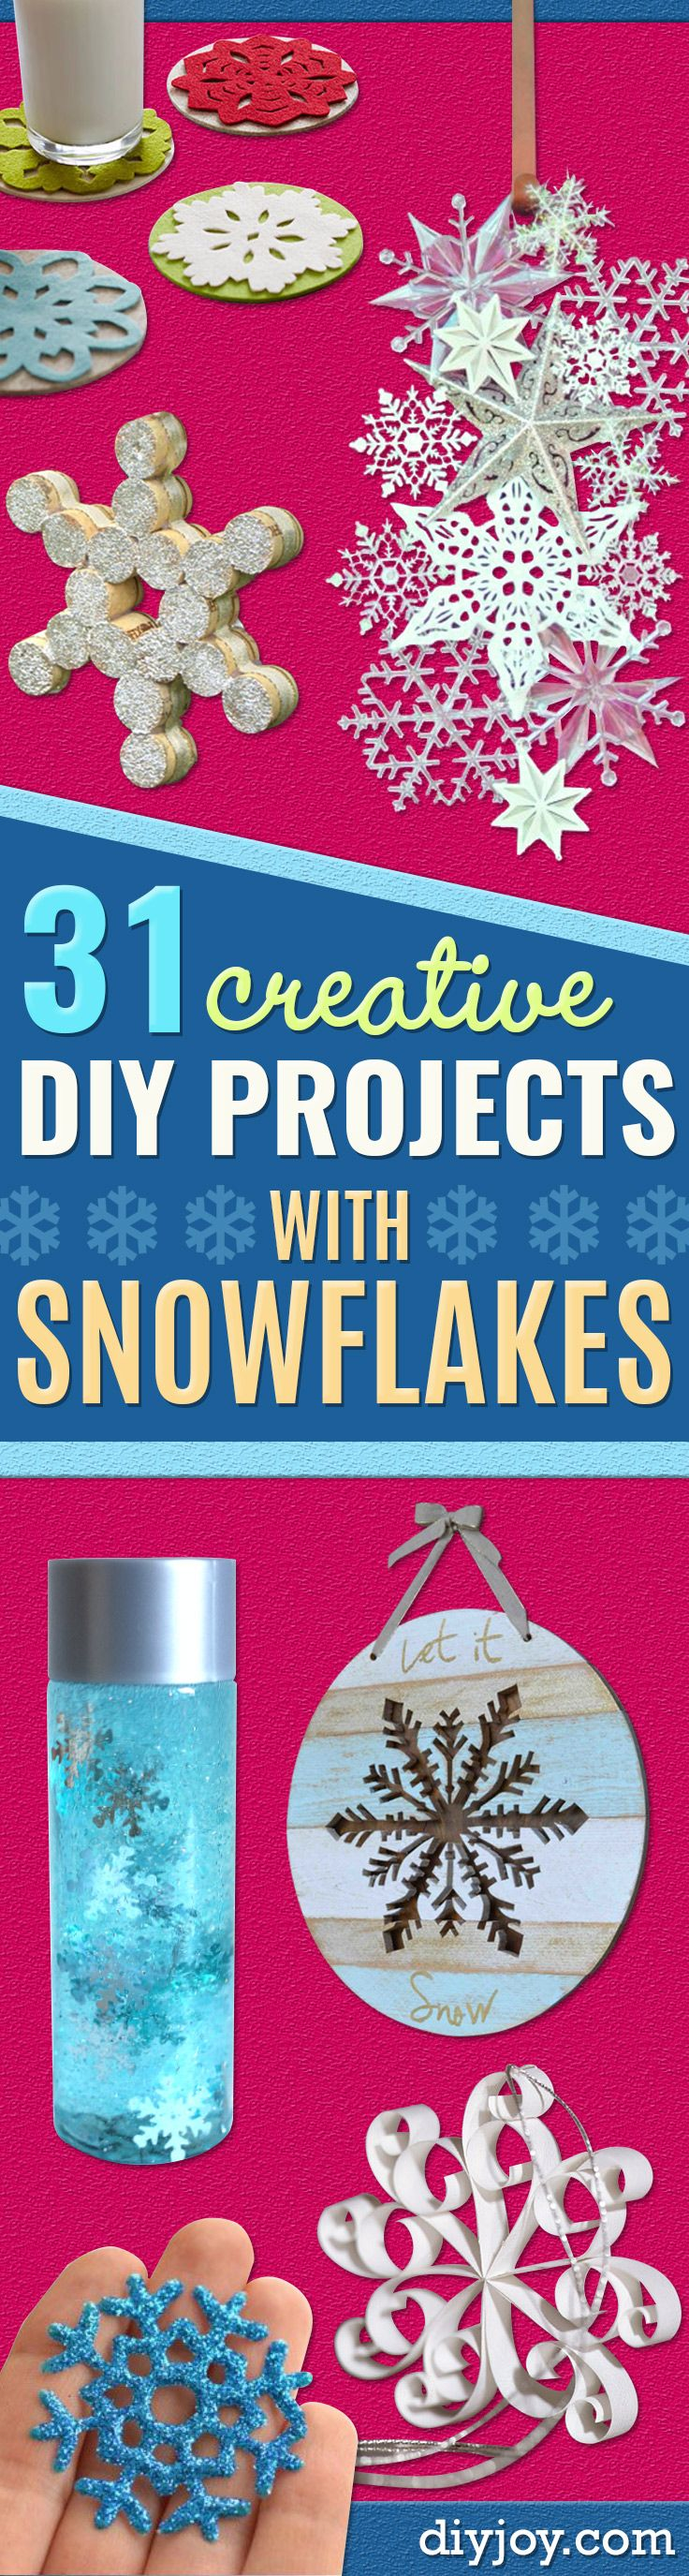 Best DIY Snowflake Decorations, Ornaments and Crafts - Paper Crafts with Snowflakes, Pipe Cleaner Projects, Mason Jars and Dollar Store Ideas - Easy DIY Ideas to Decorate for Winter - Creative Home Decor and Room Decorations for Adults, Teens and Kids http://diyjoy.com/diy-projects-snowflakes